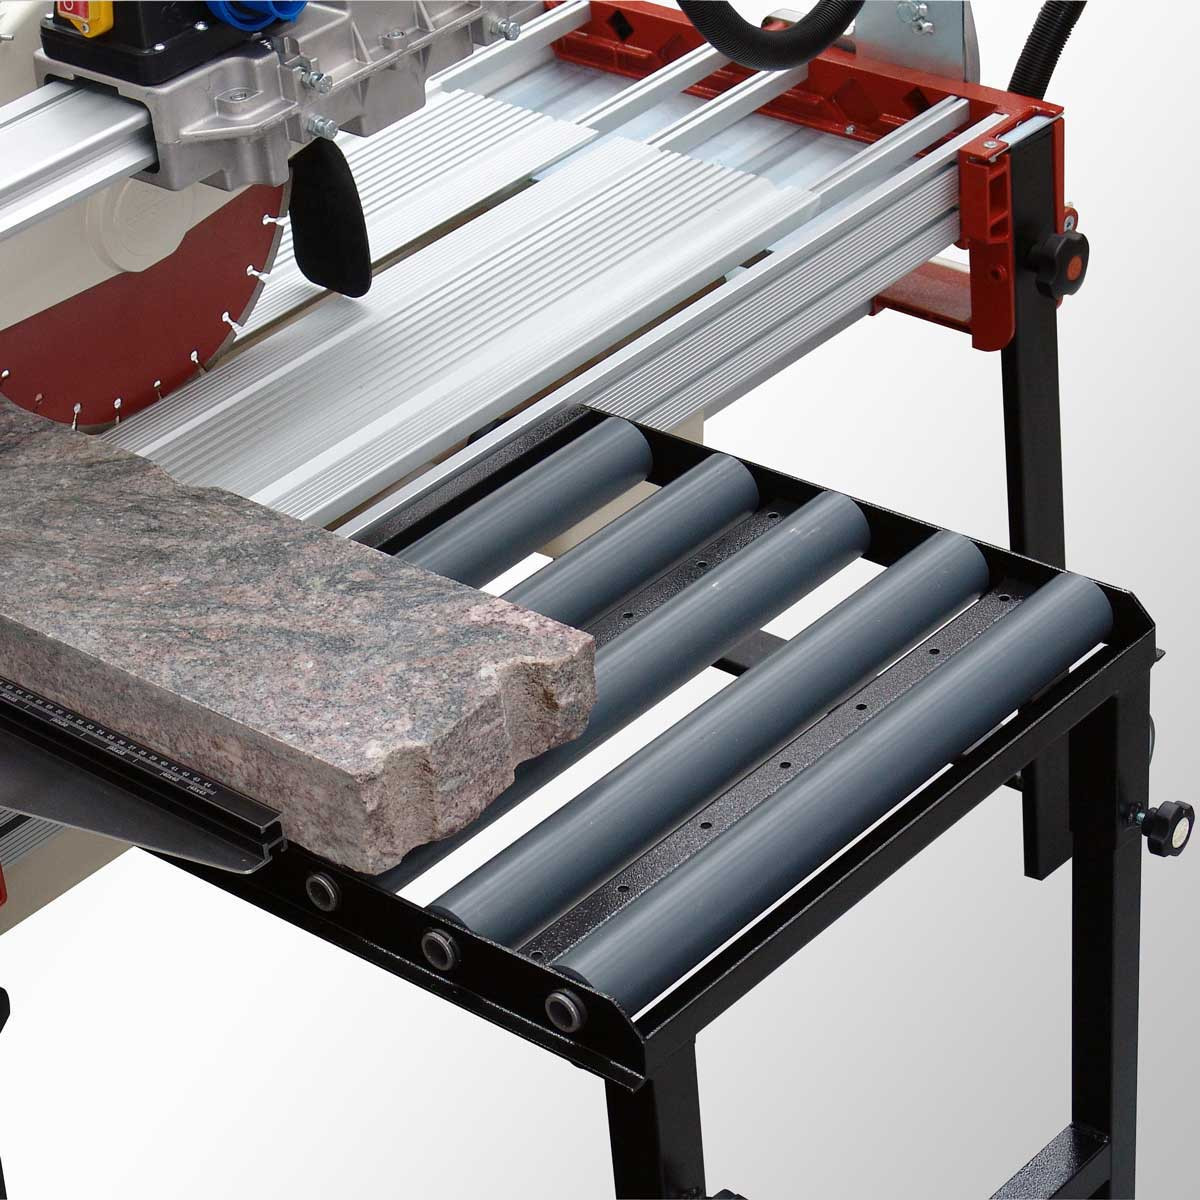 Raimondi rail saw rolling extension table